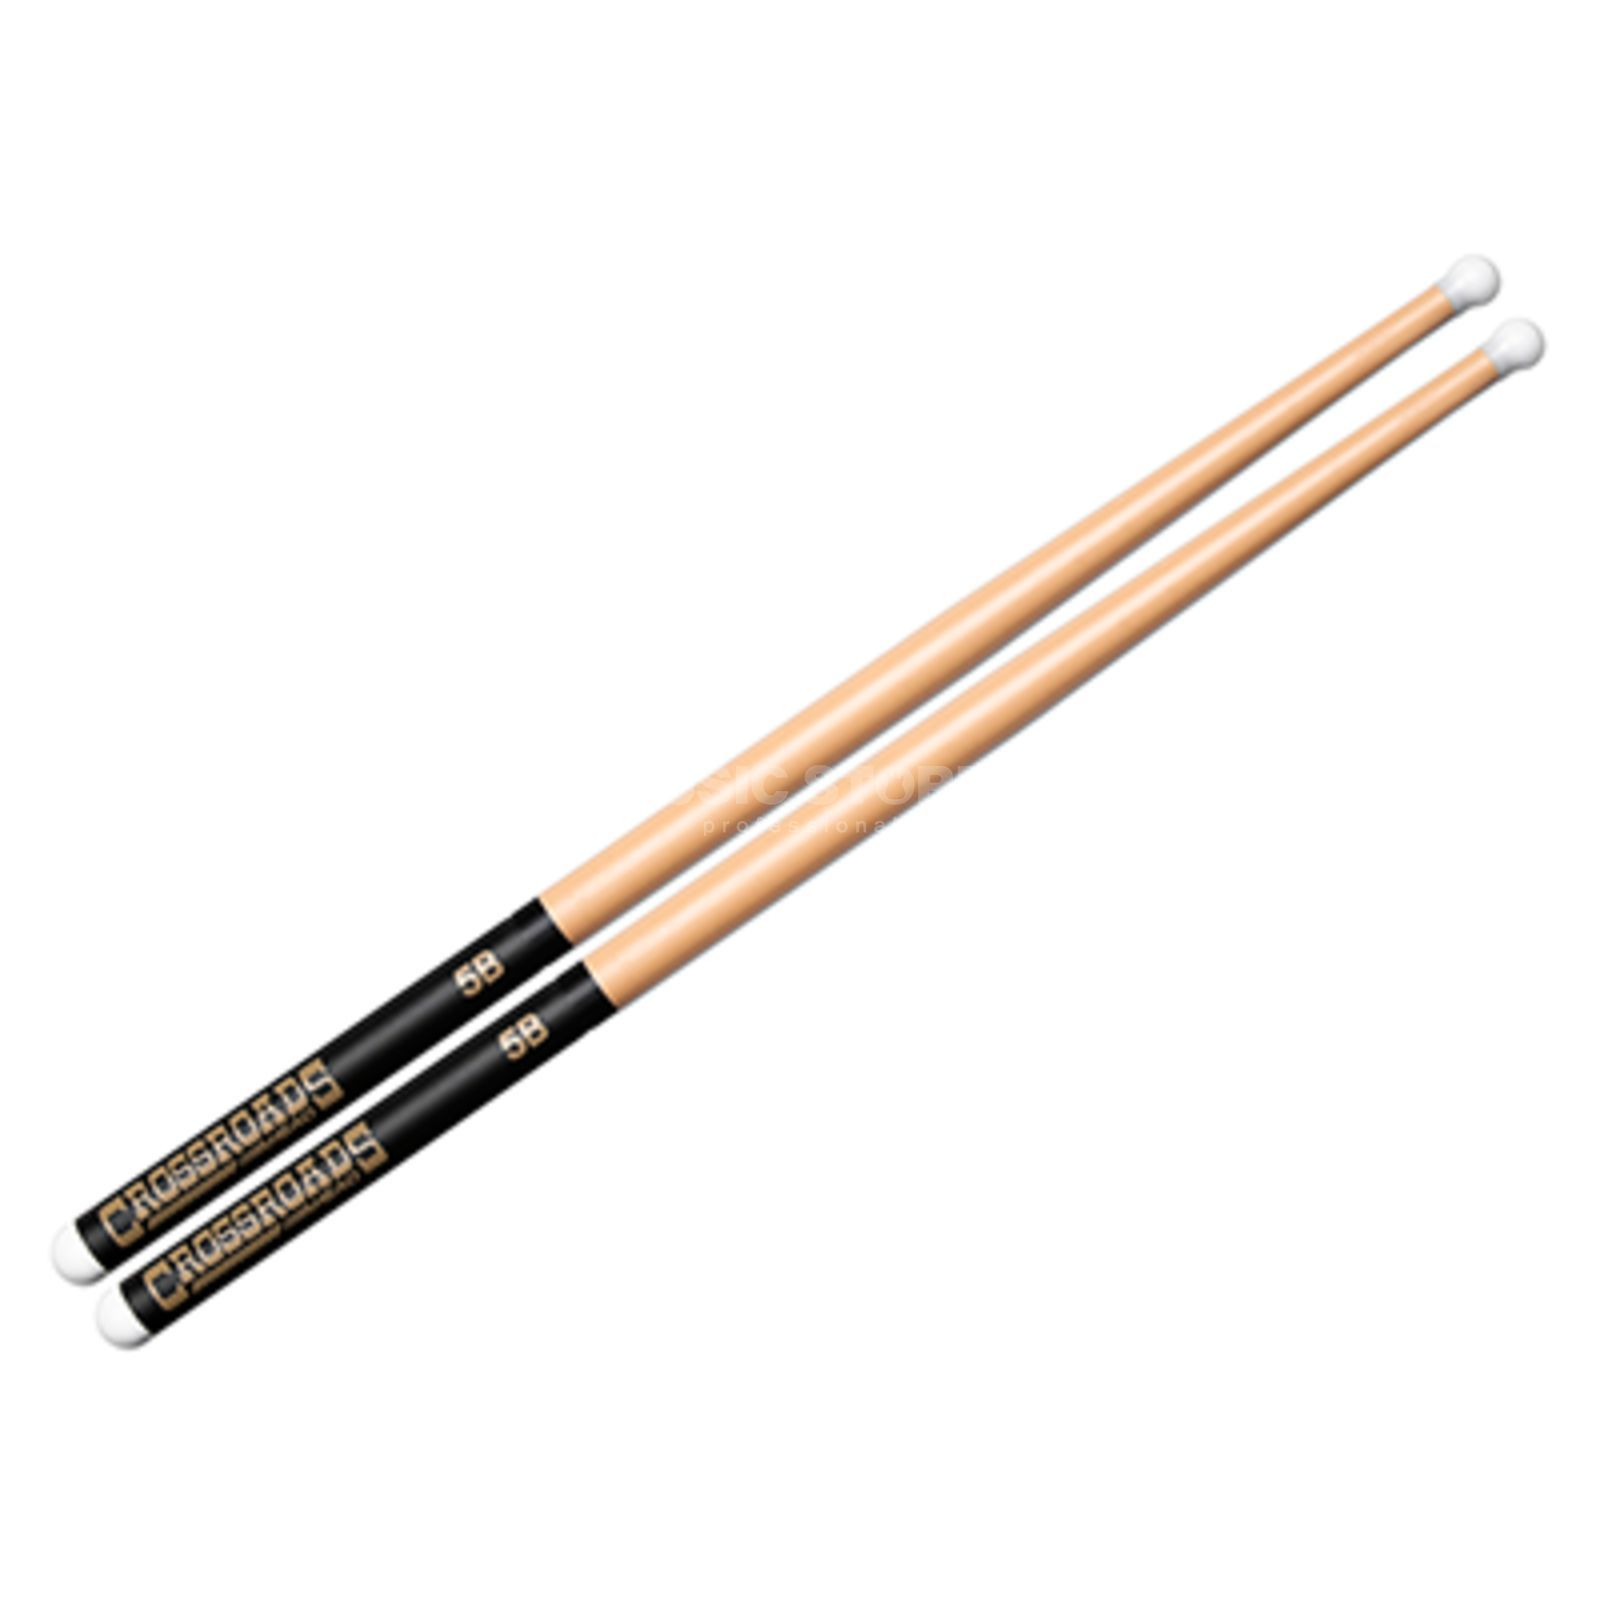 Ahead Sticks XRB Aluminium Sticks Long Taper Produktbild